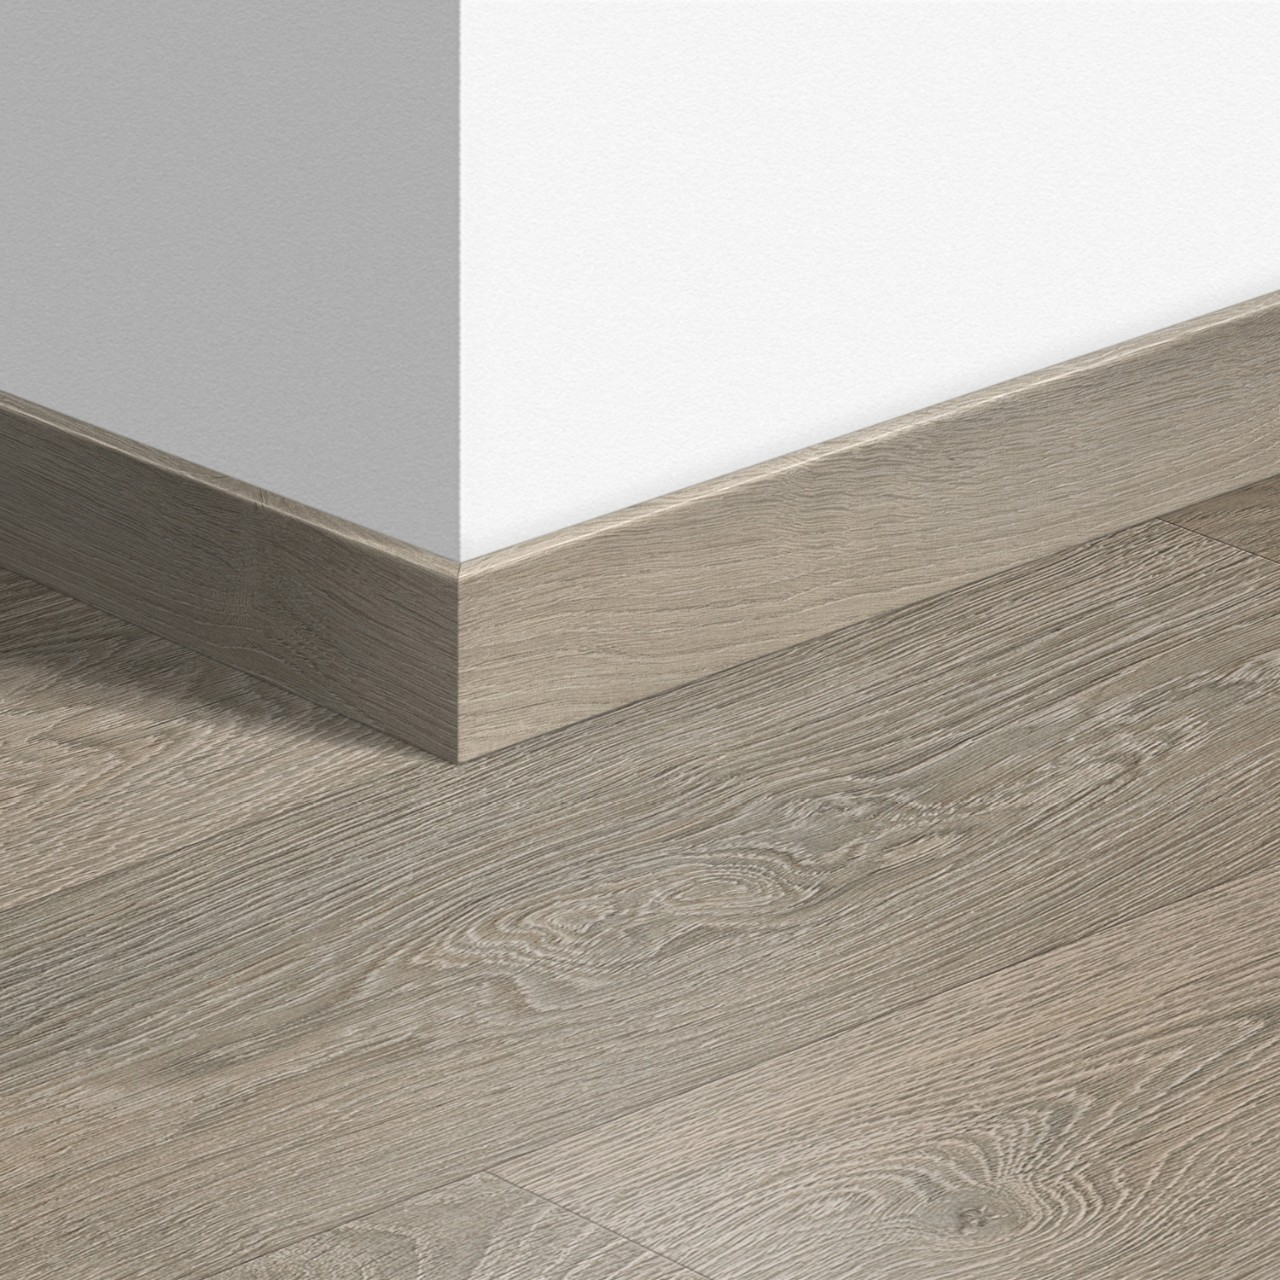 QSSK Laminate Accessories Old oak light grey QSSK01405